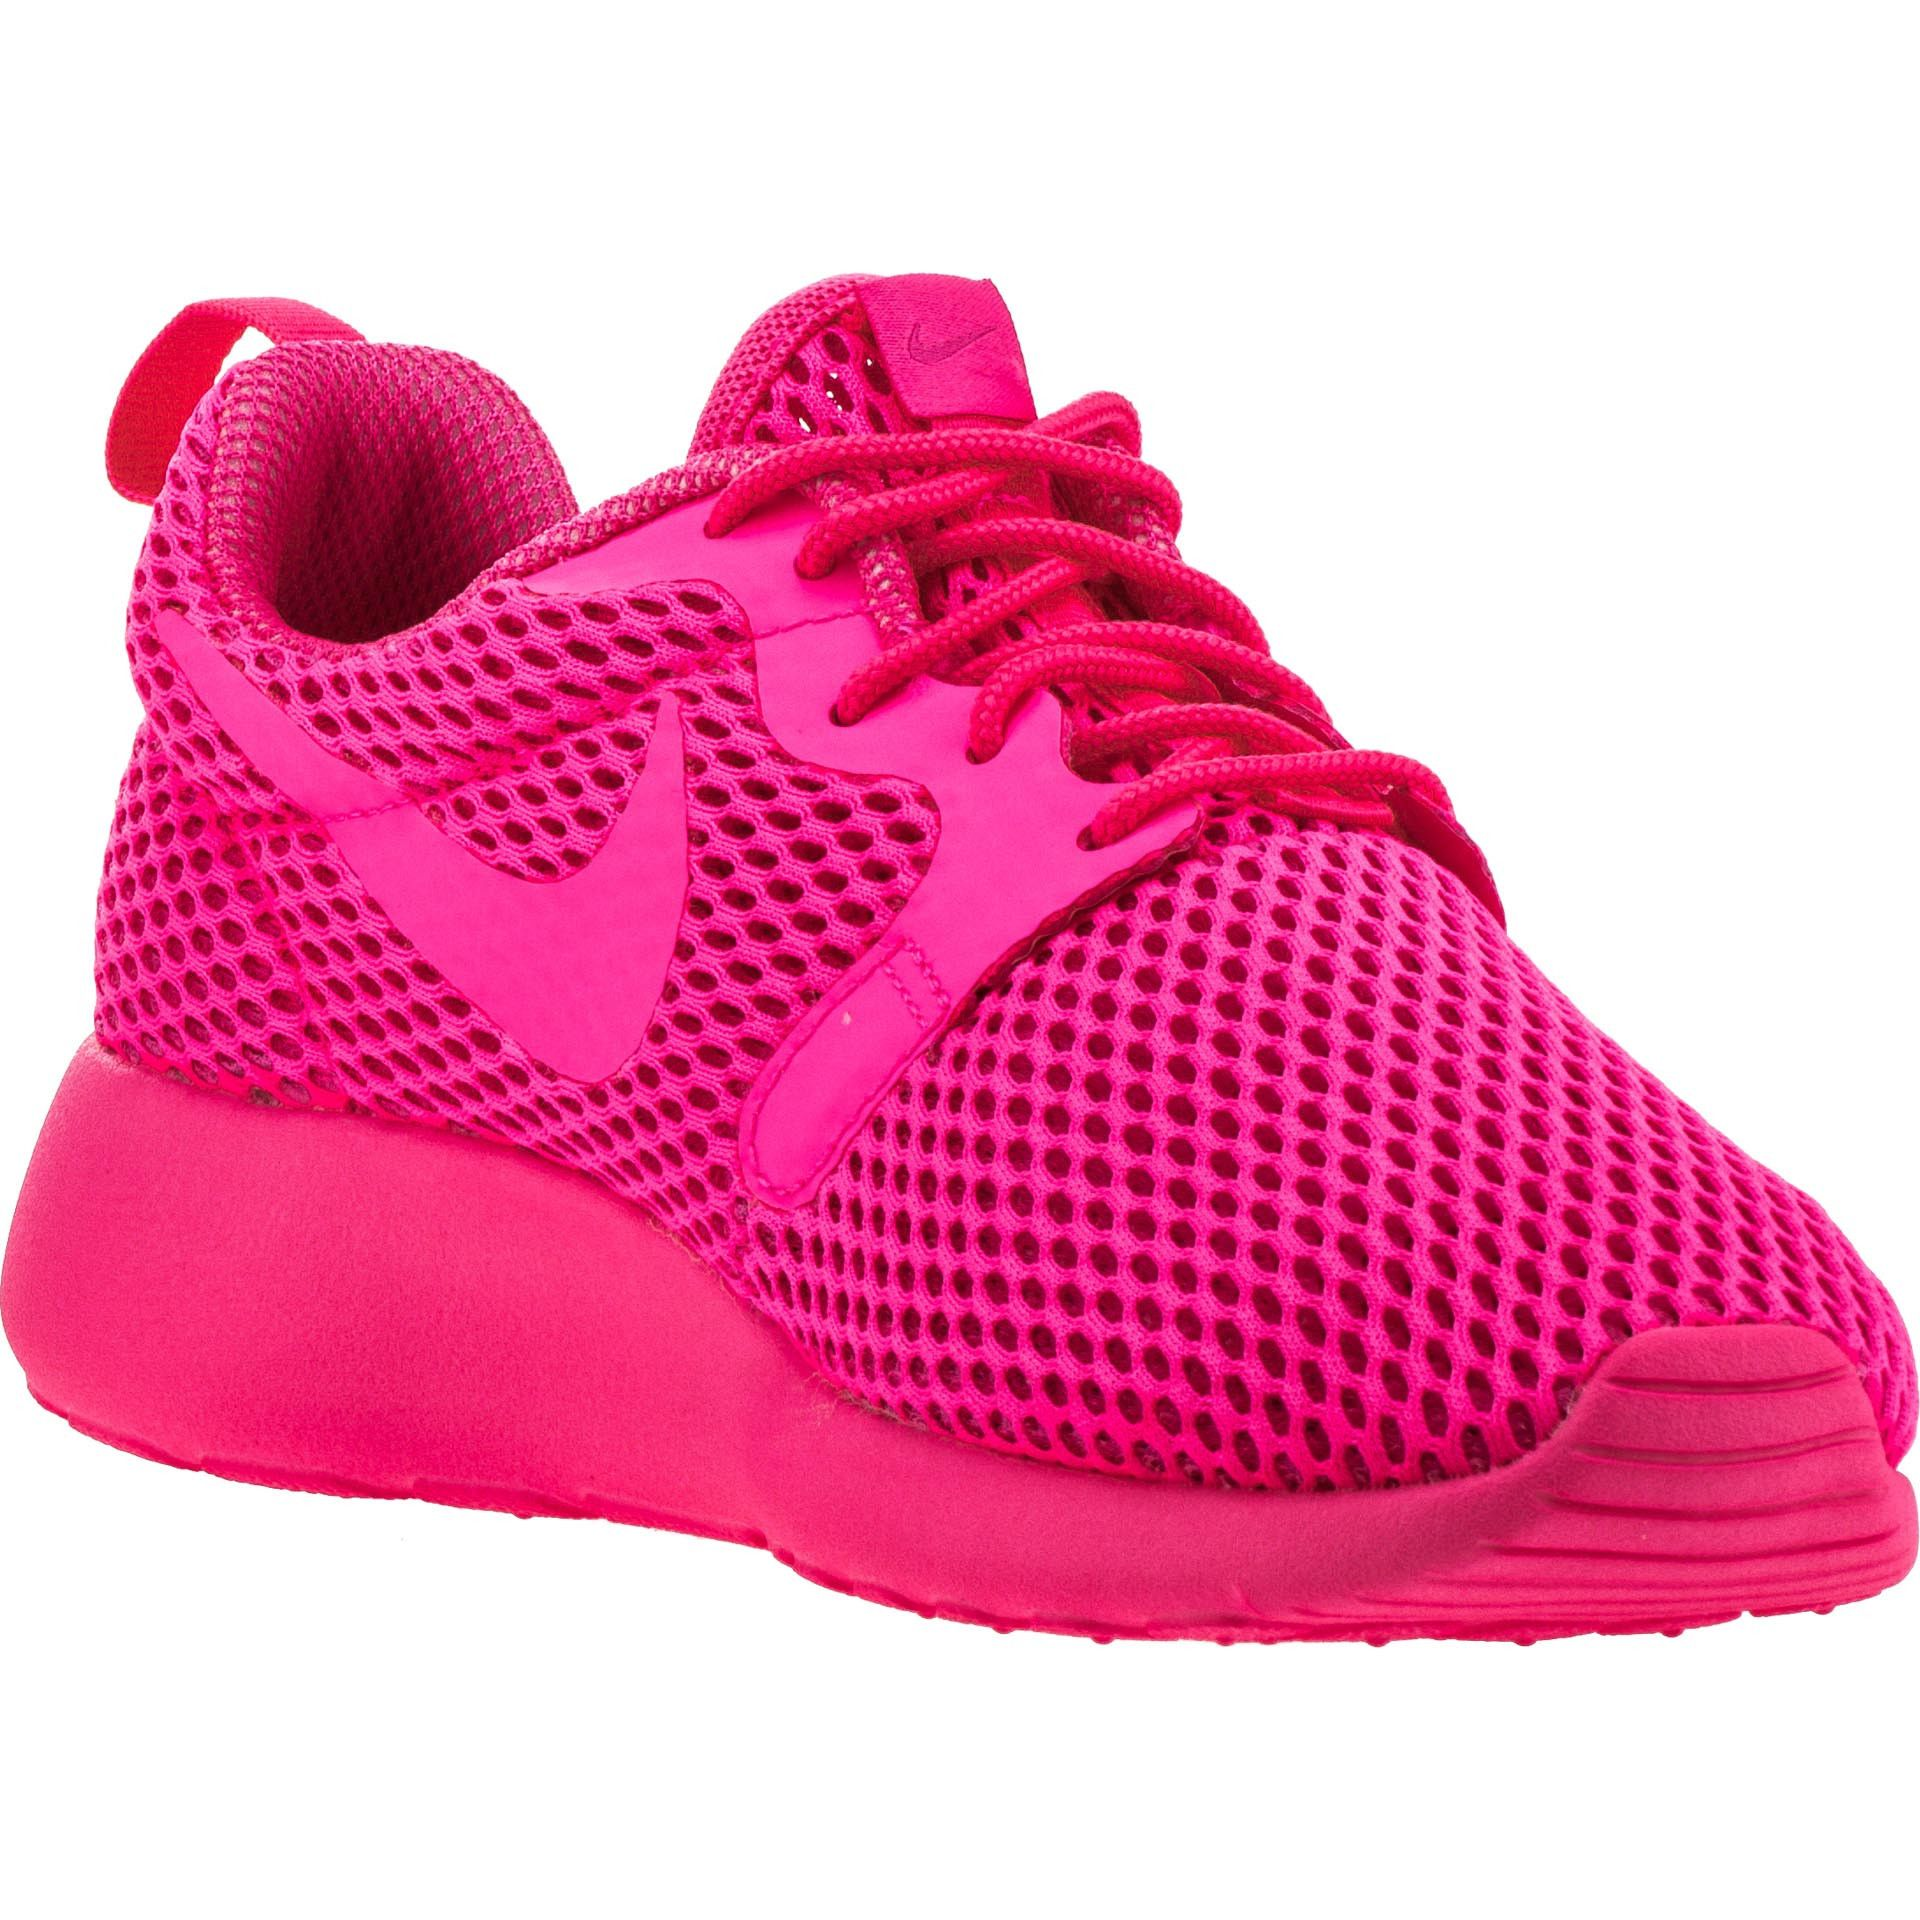 Nike Roshe One Hyper Breathe (Womens) - Pink Blast/Fire Pink/Pink